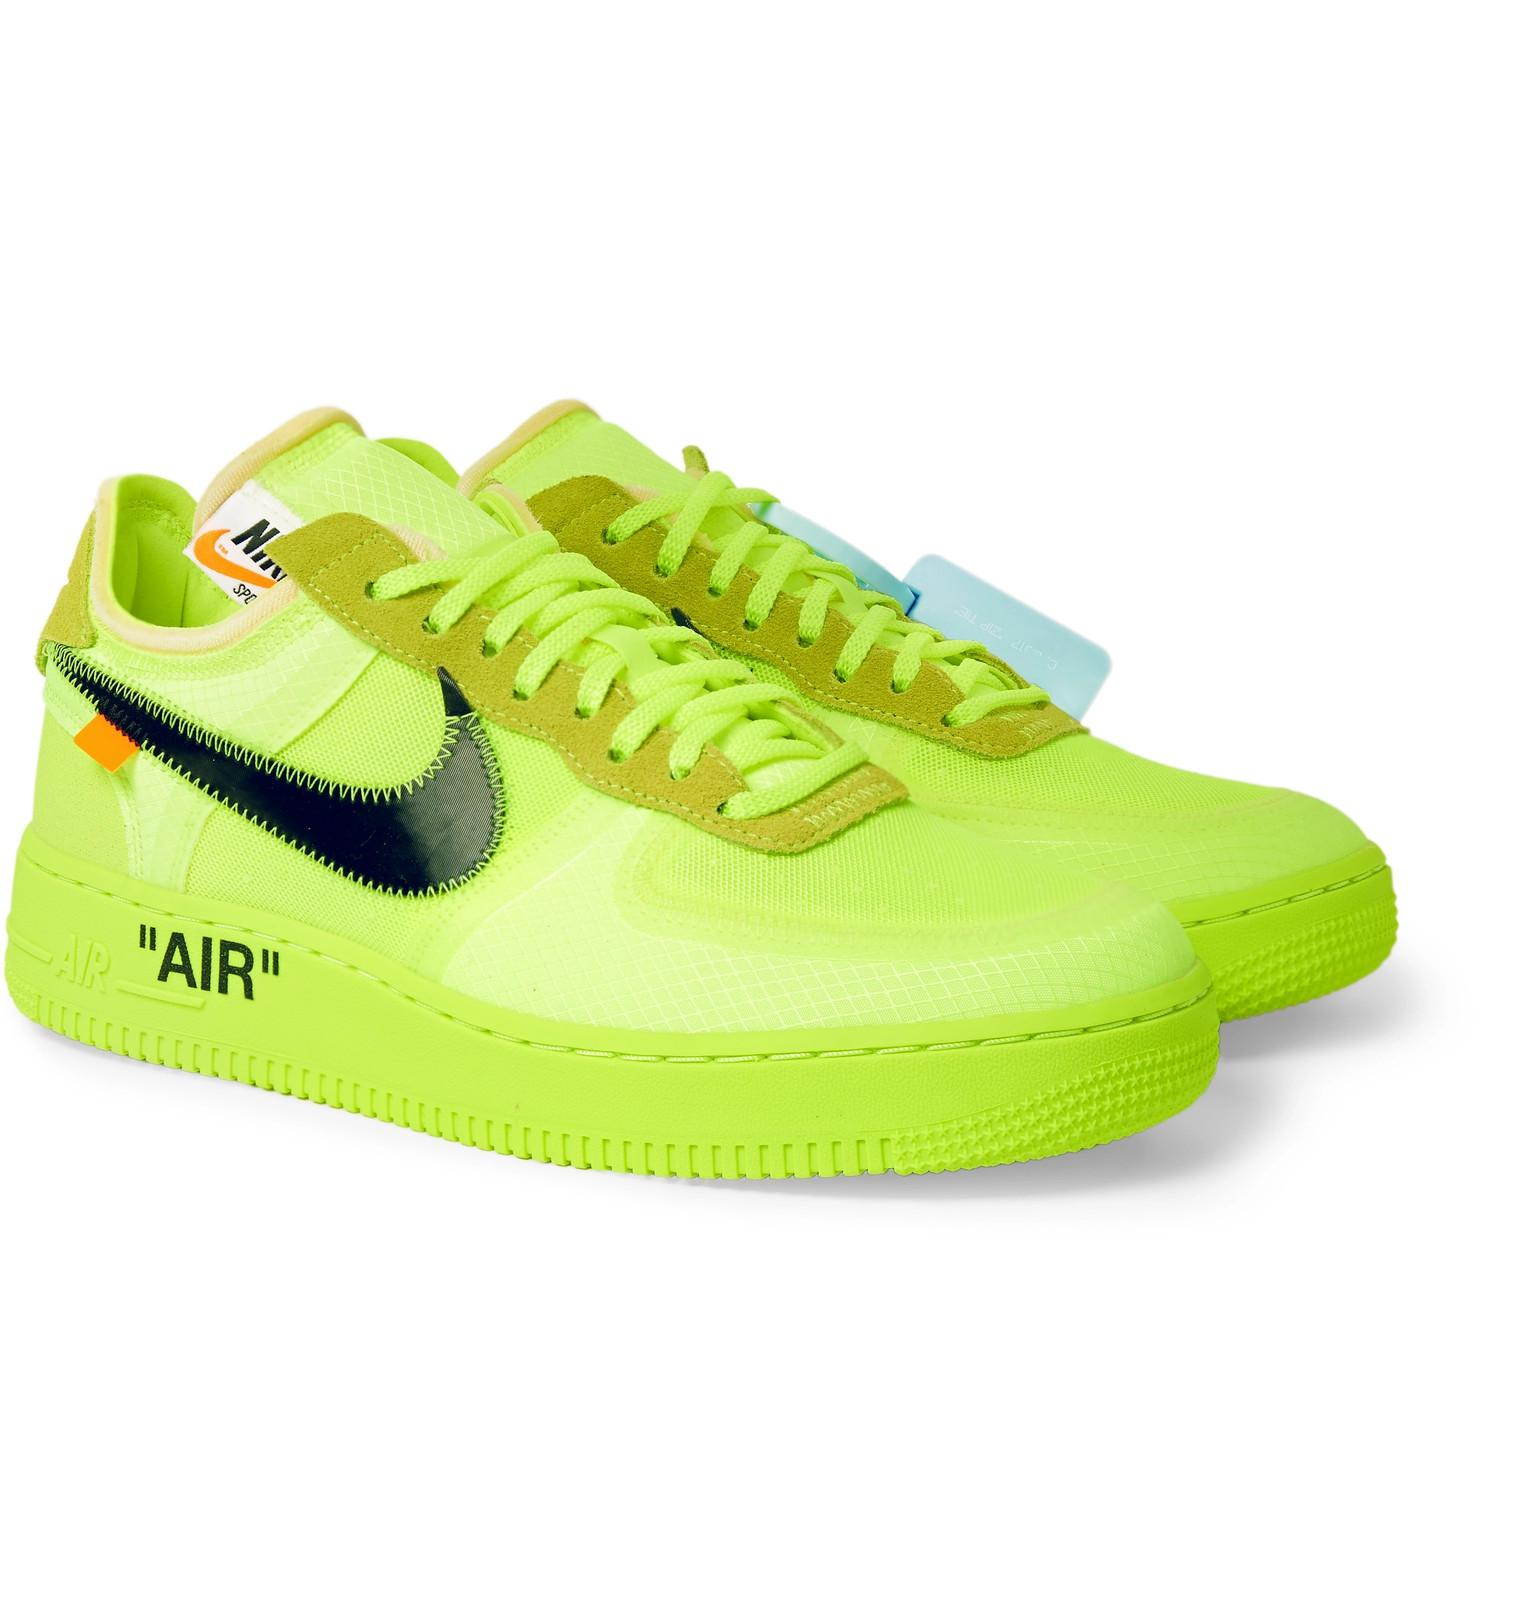 official photos b836e 0f154 Men s Green + Off-white The Ten  Air Force 1 Trainers